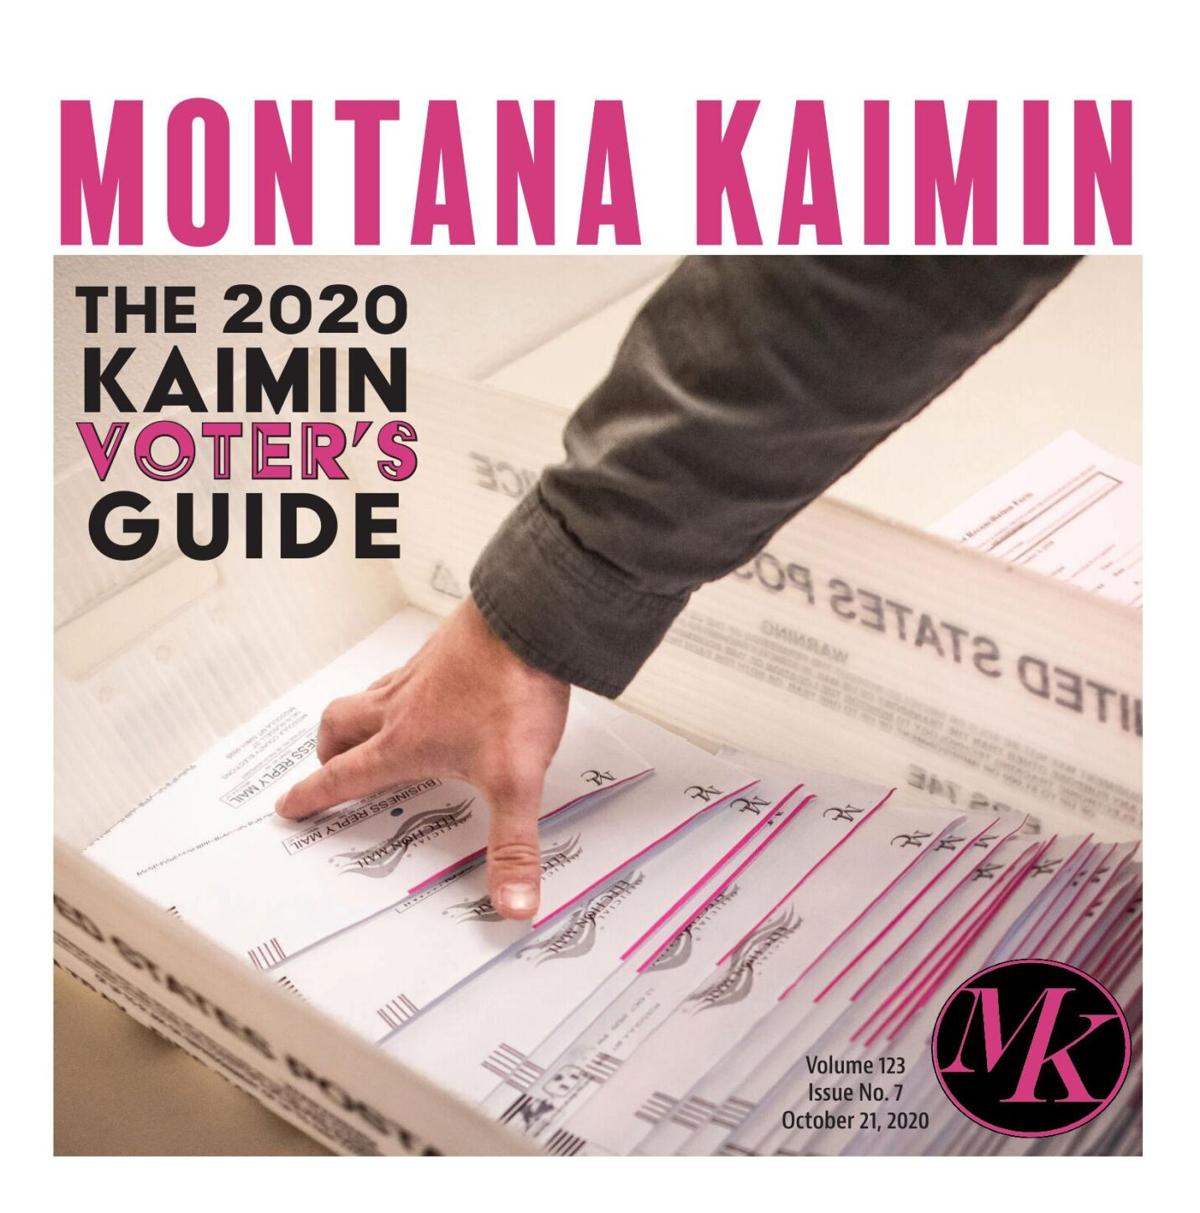 Montana Kaimin | Vol 123 Issue no. 09 10.21.2020